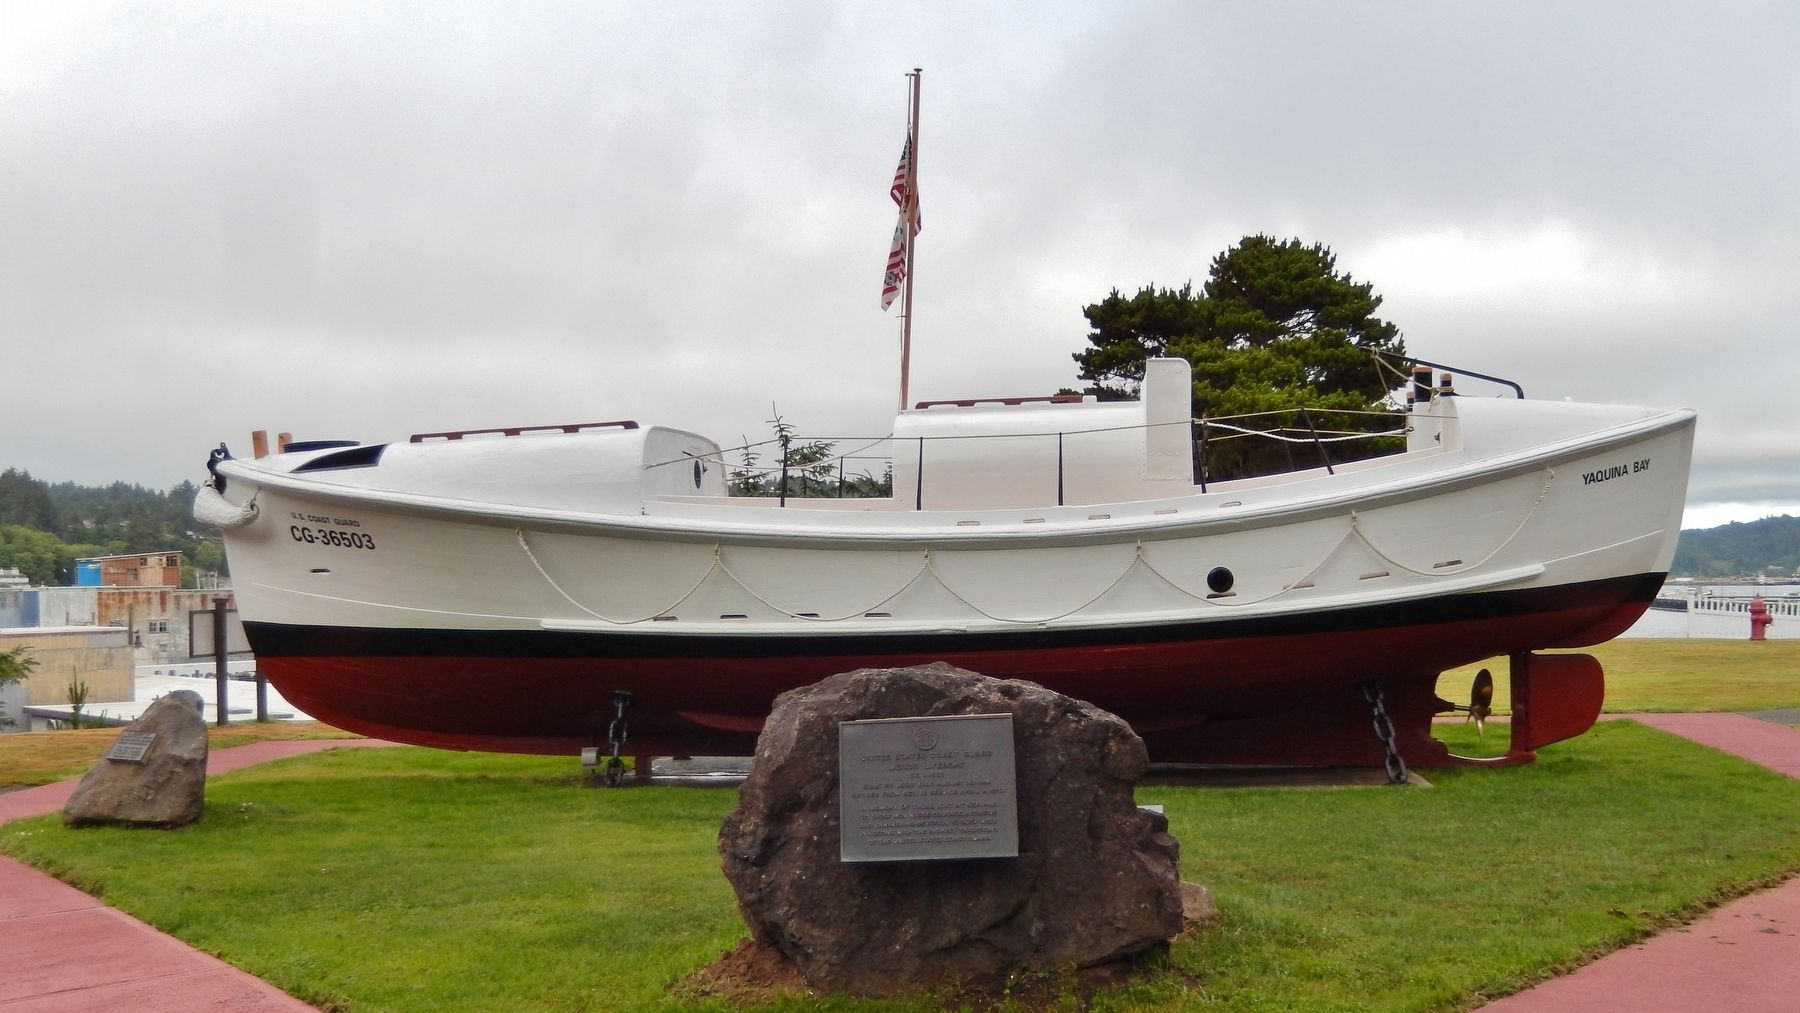 United States Coast Guard Motor Lifeboat CG 36503 Marker (<i>wide view</i>) image. Click for full size.